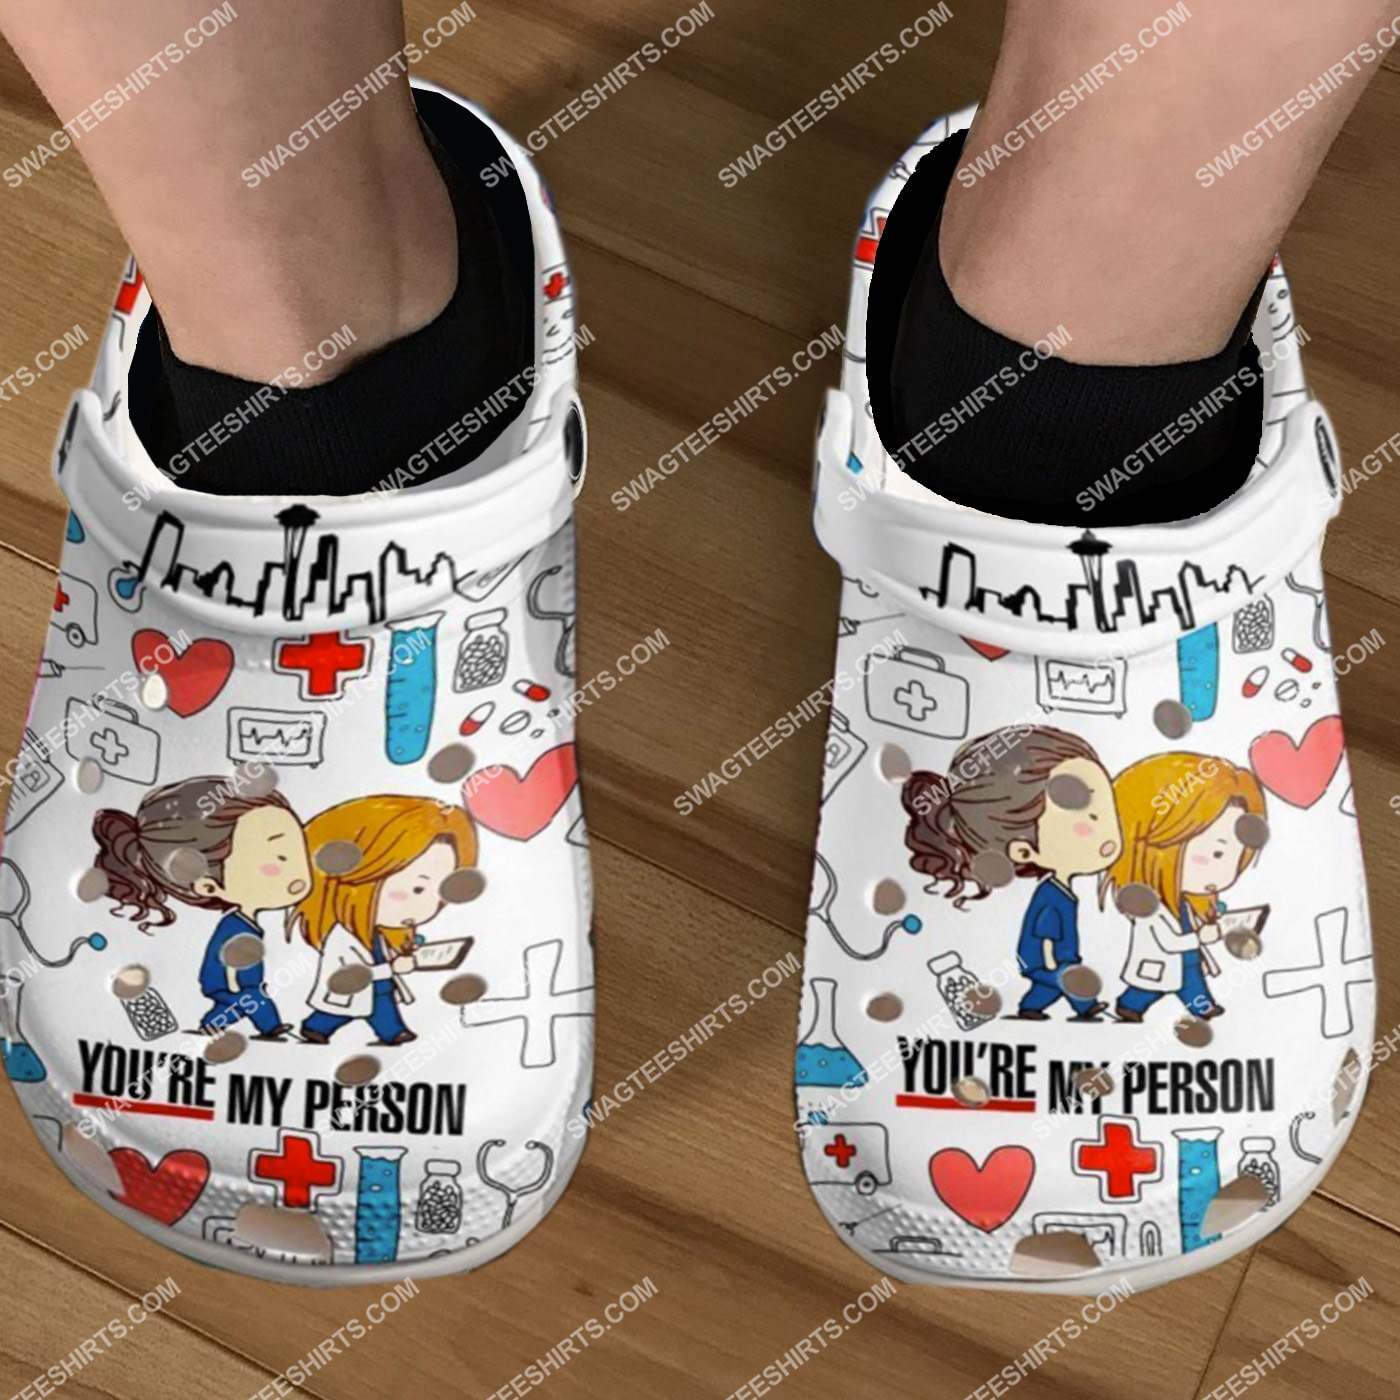 grey's anatomy you're my person all over printed crocs 5(1)